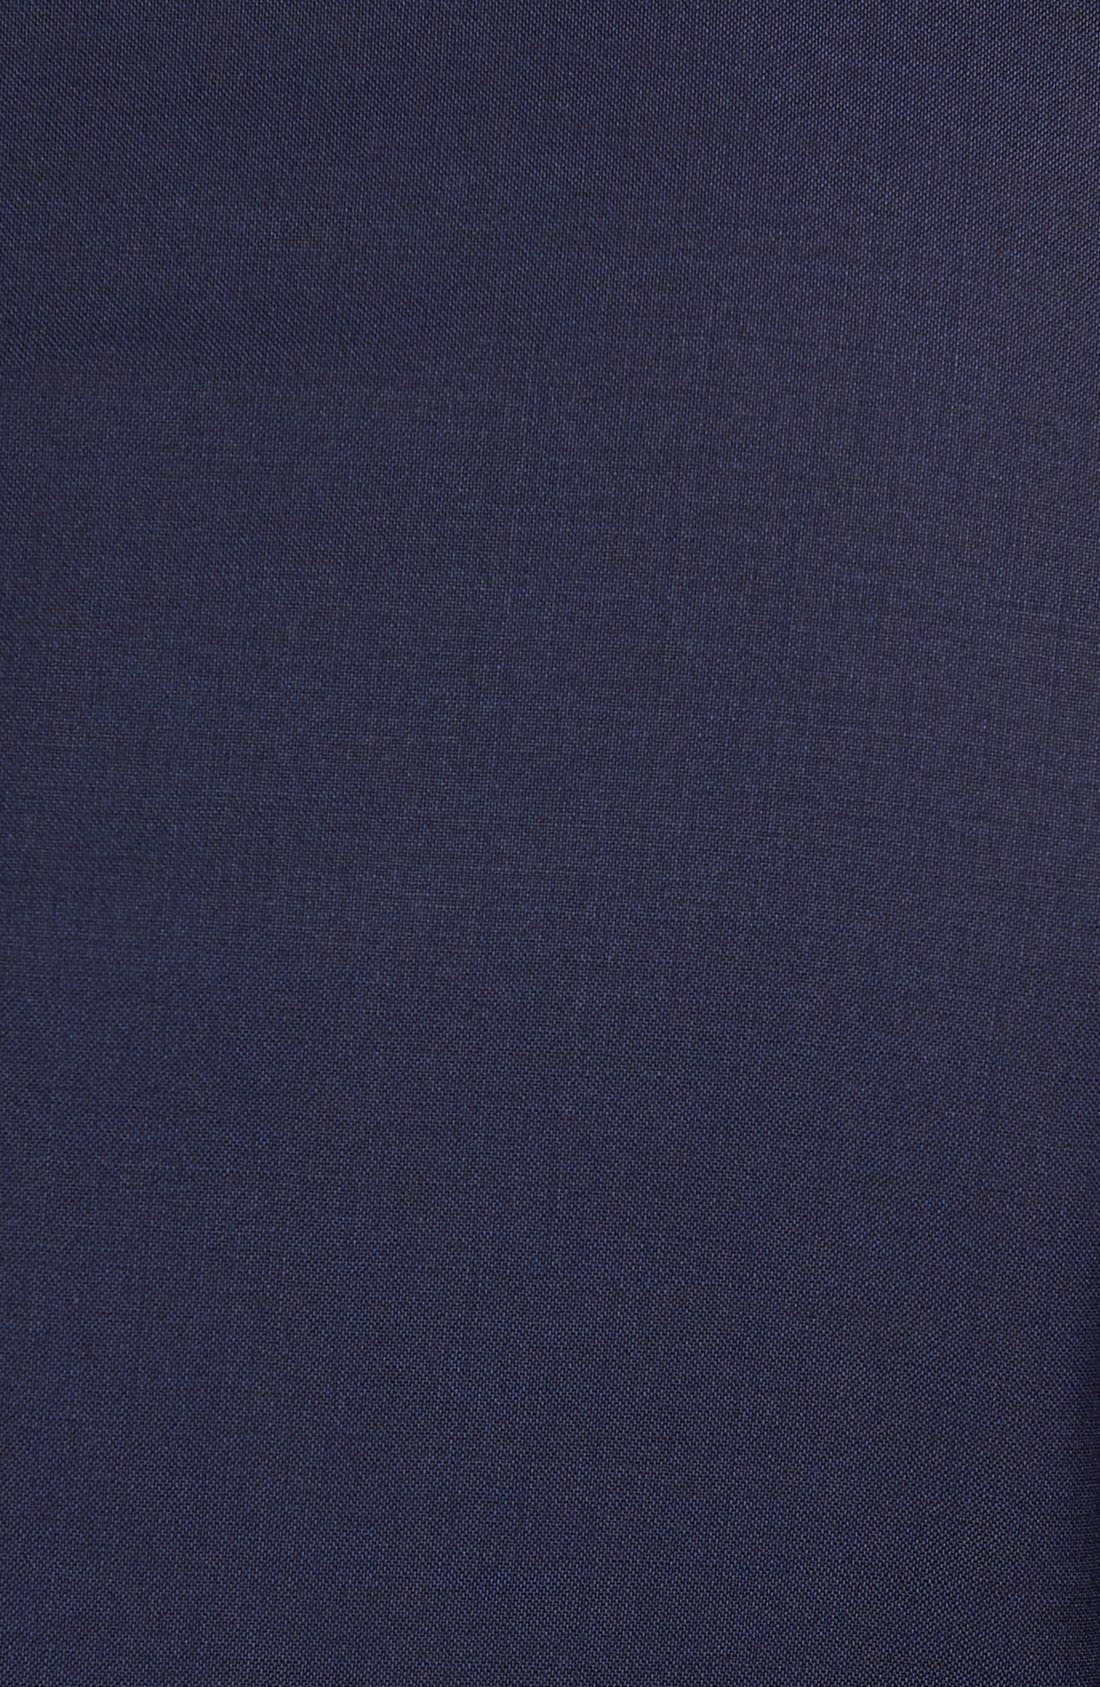 Huge/Genius Trim Fit Navy Wool Suit,                             Alternate thumbnail 7, color,                             Navy